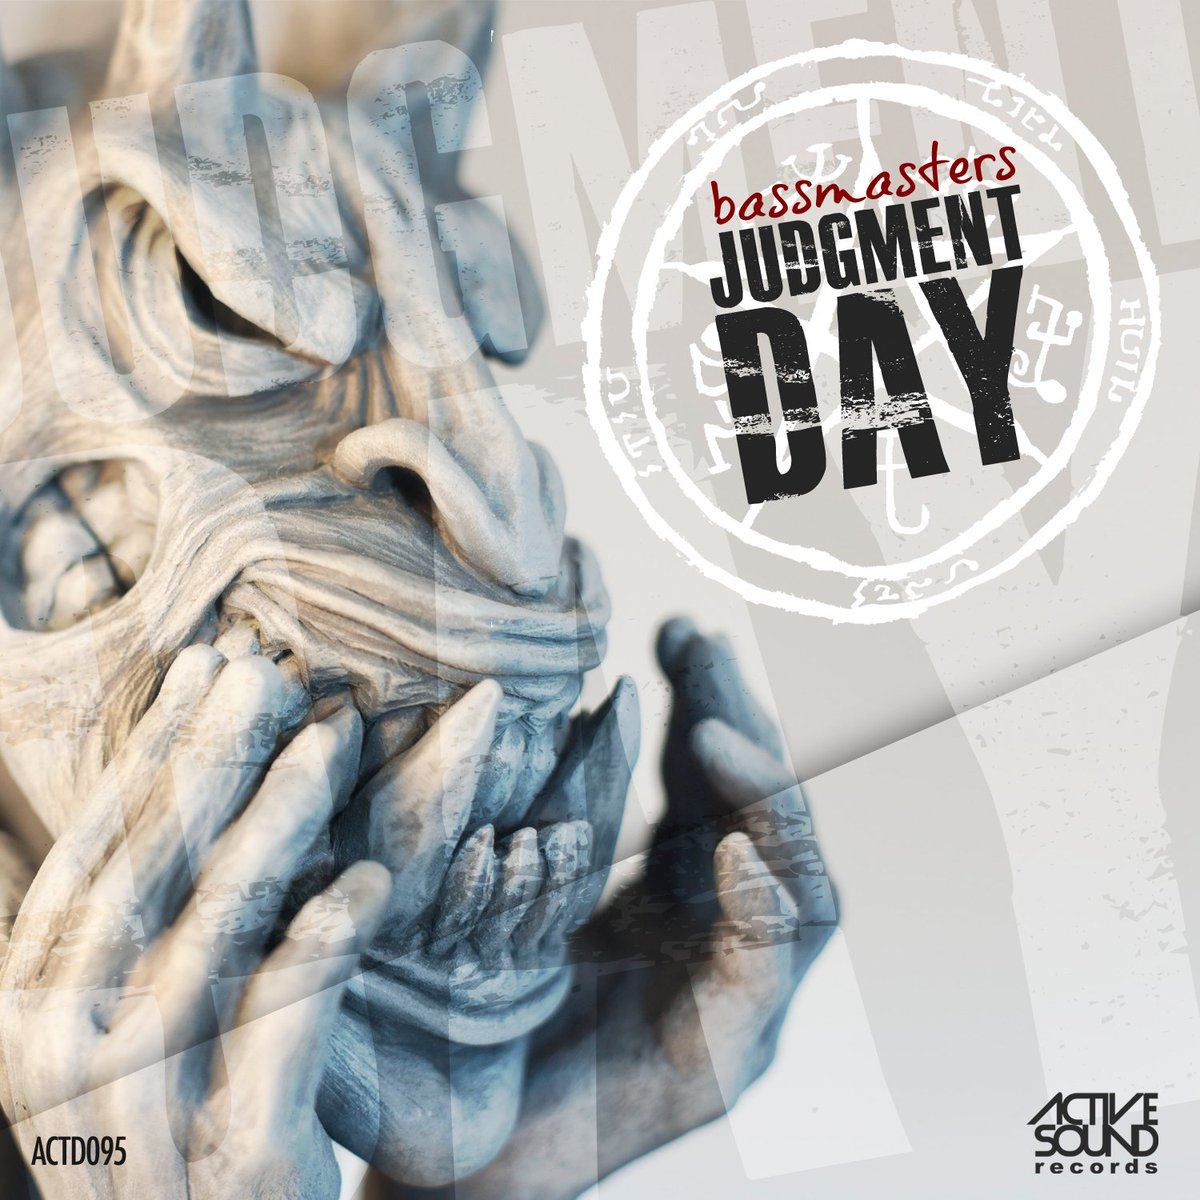 Bassmasters - Judgment Day